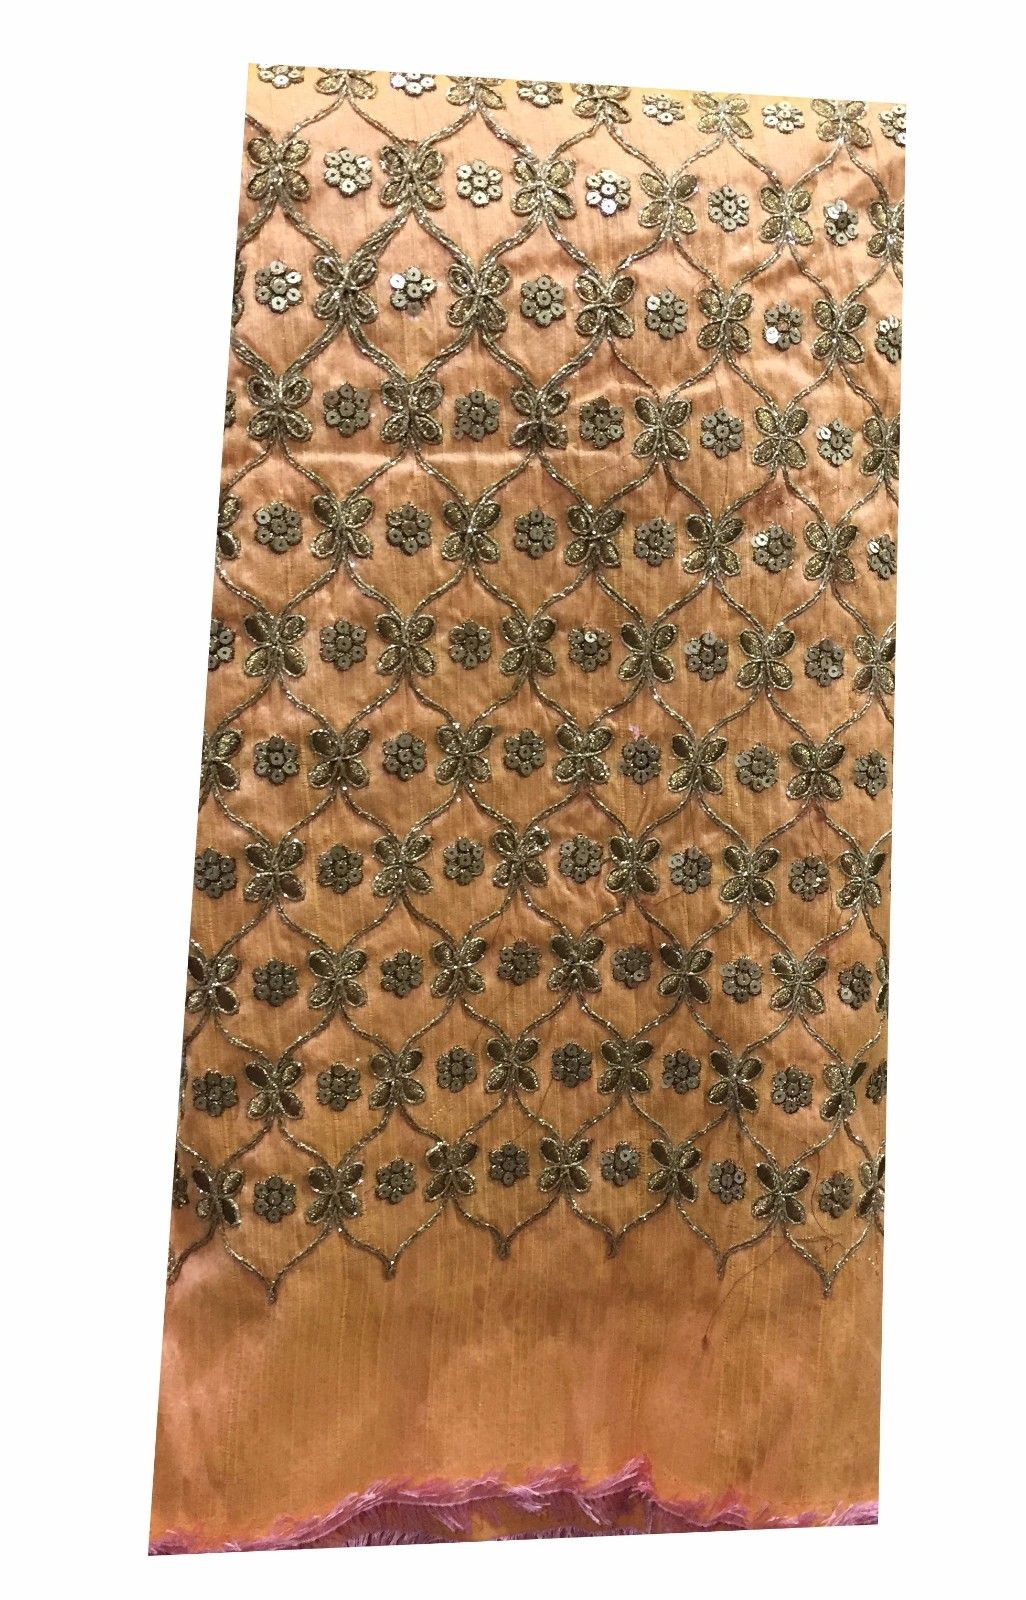 buy embroidered fabric online india blouse material online india Embroidered, Sequins Dupion Silk Peach, Gold 47 inches Wide 8064